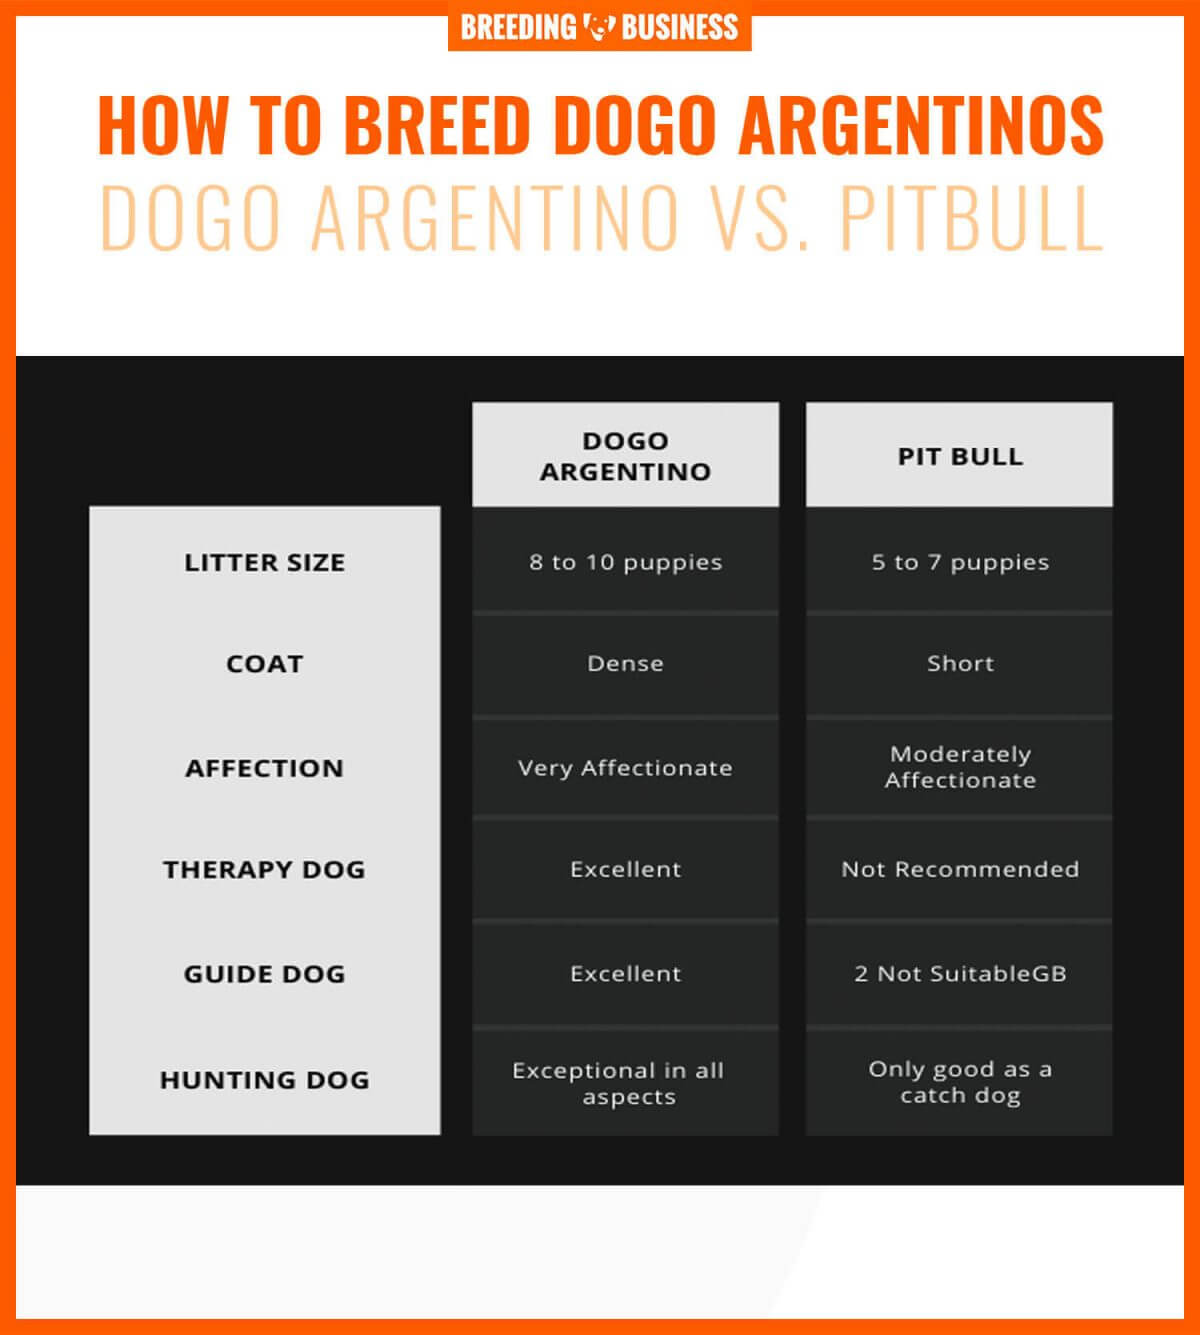 How To Breed Dogo Argentinos – Health concerns, Litter ...